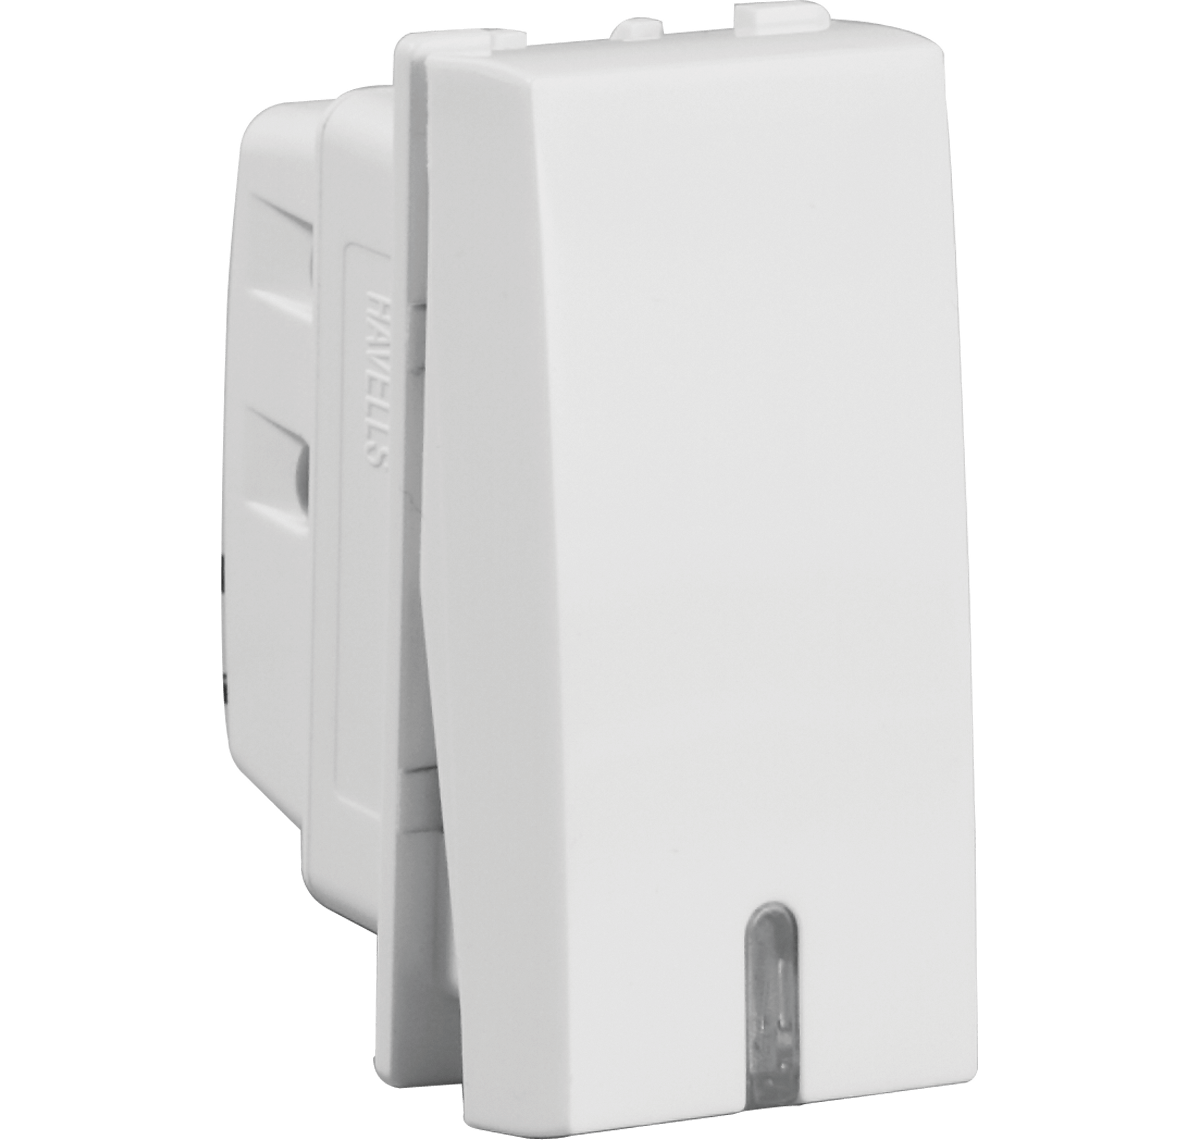 16Ax 1 way switch with ind.